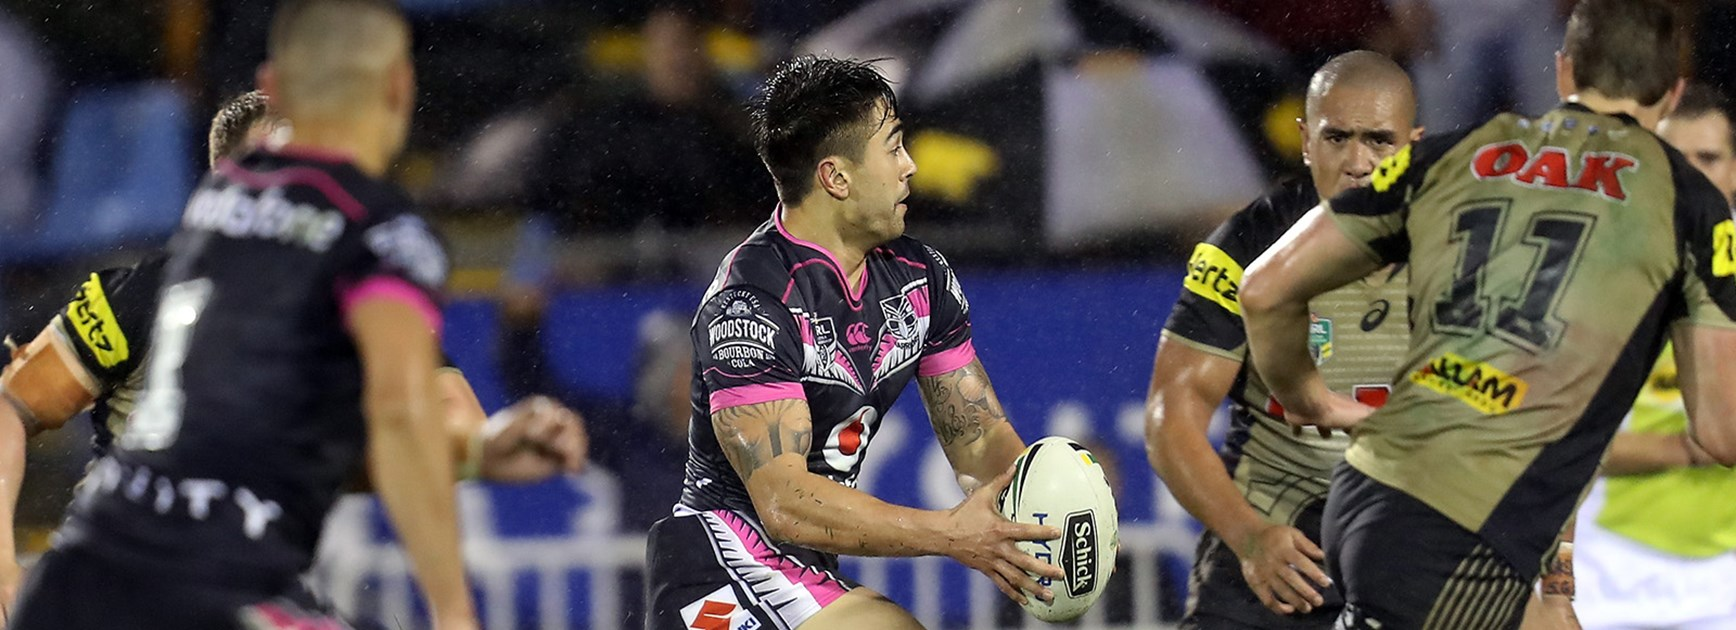 Shaun Johnson on his way to the try line in golden point against the Panthers in Round 21.